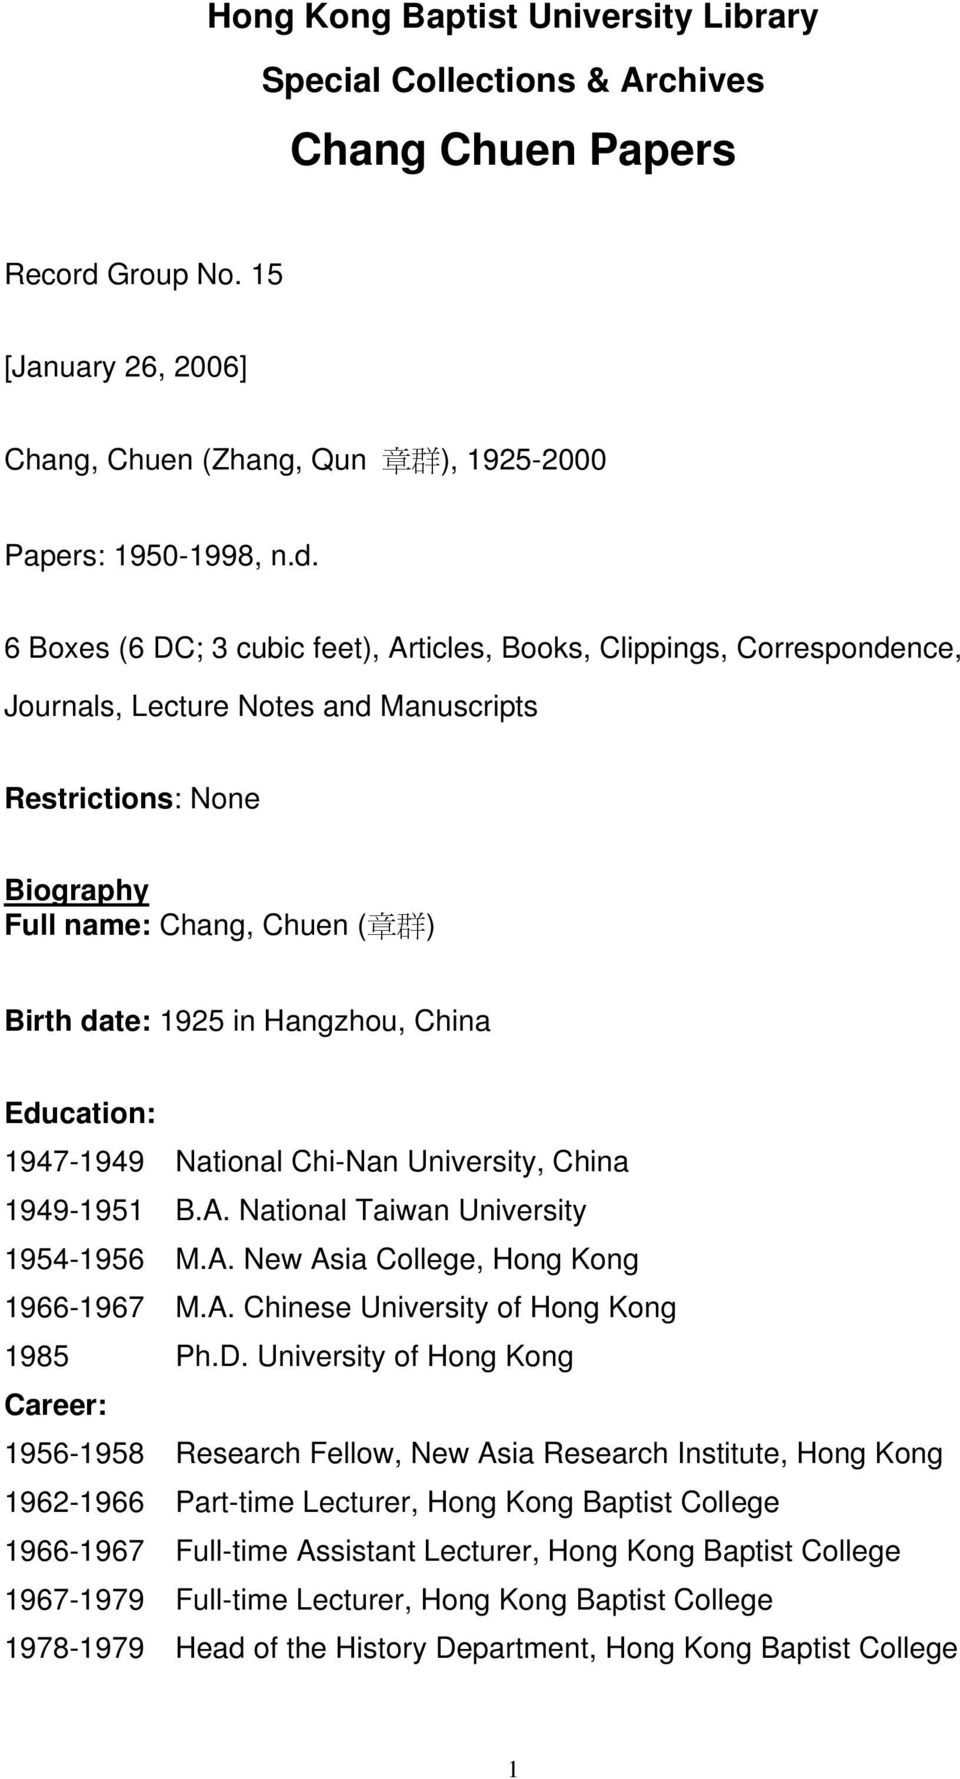 6 Boxes (6 DC; 3 cubic feet), Articles, Books, Clippings, Correspondence, Journals, Lecture Notes and Manuscripts Restrictions: None Biography Full name: Chang, Chuen ( 章 群 ) Birth date: 192 in